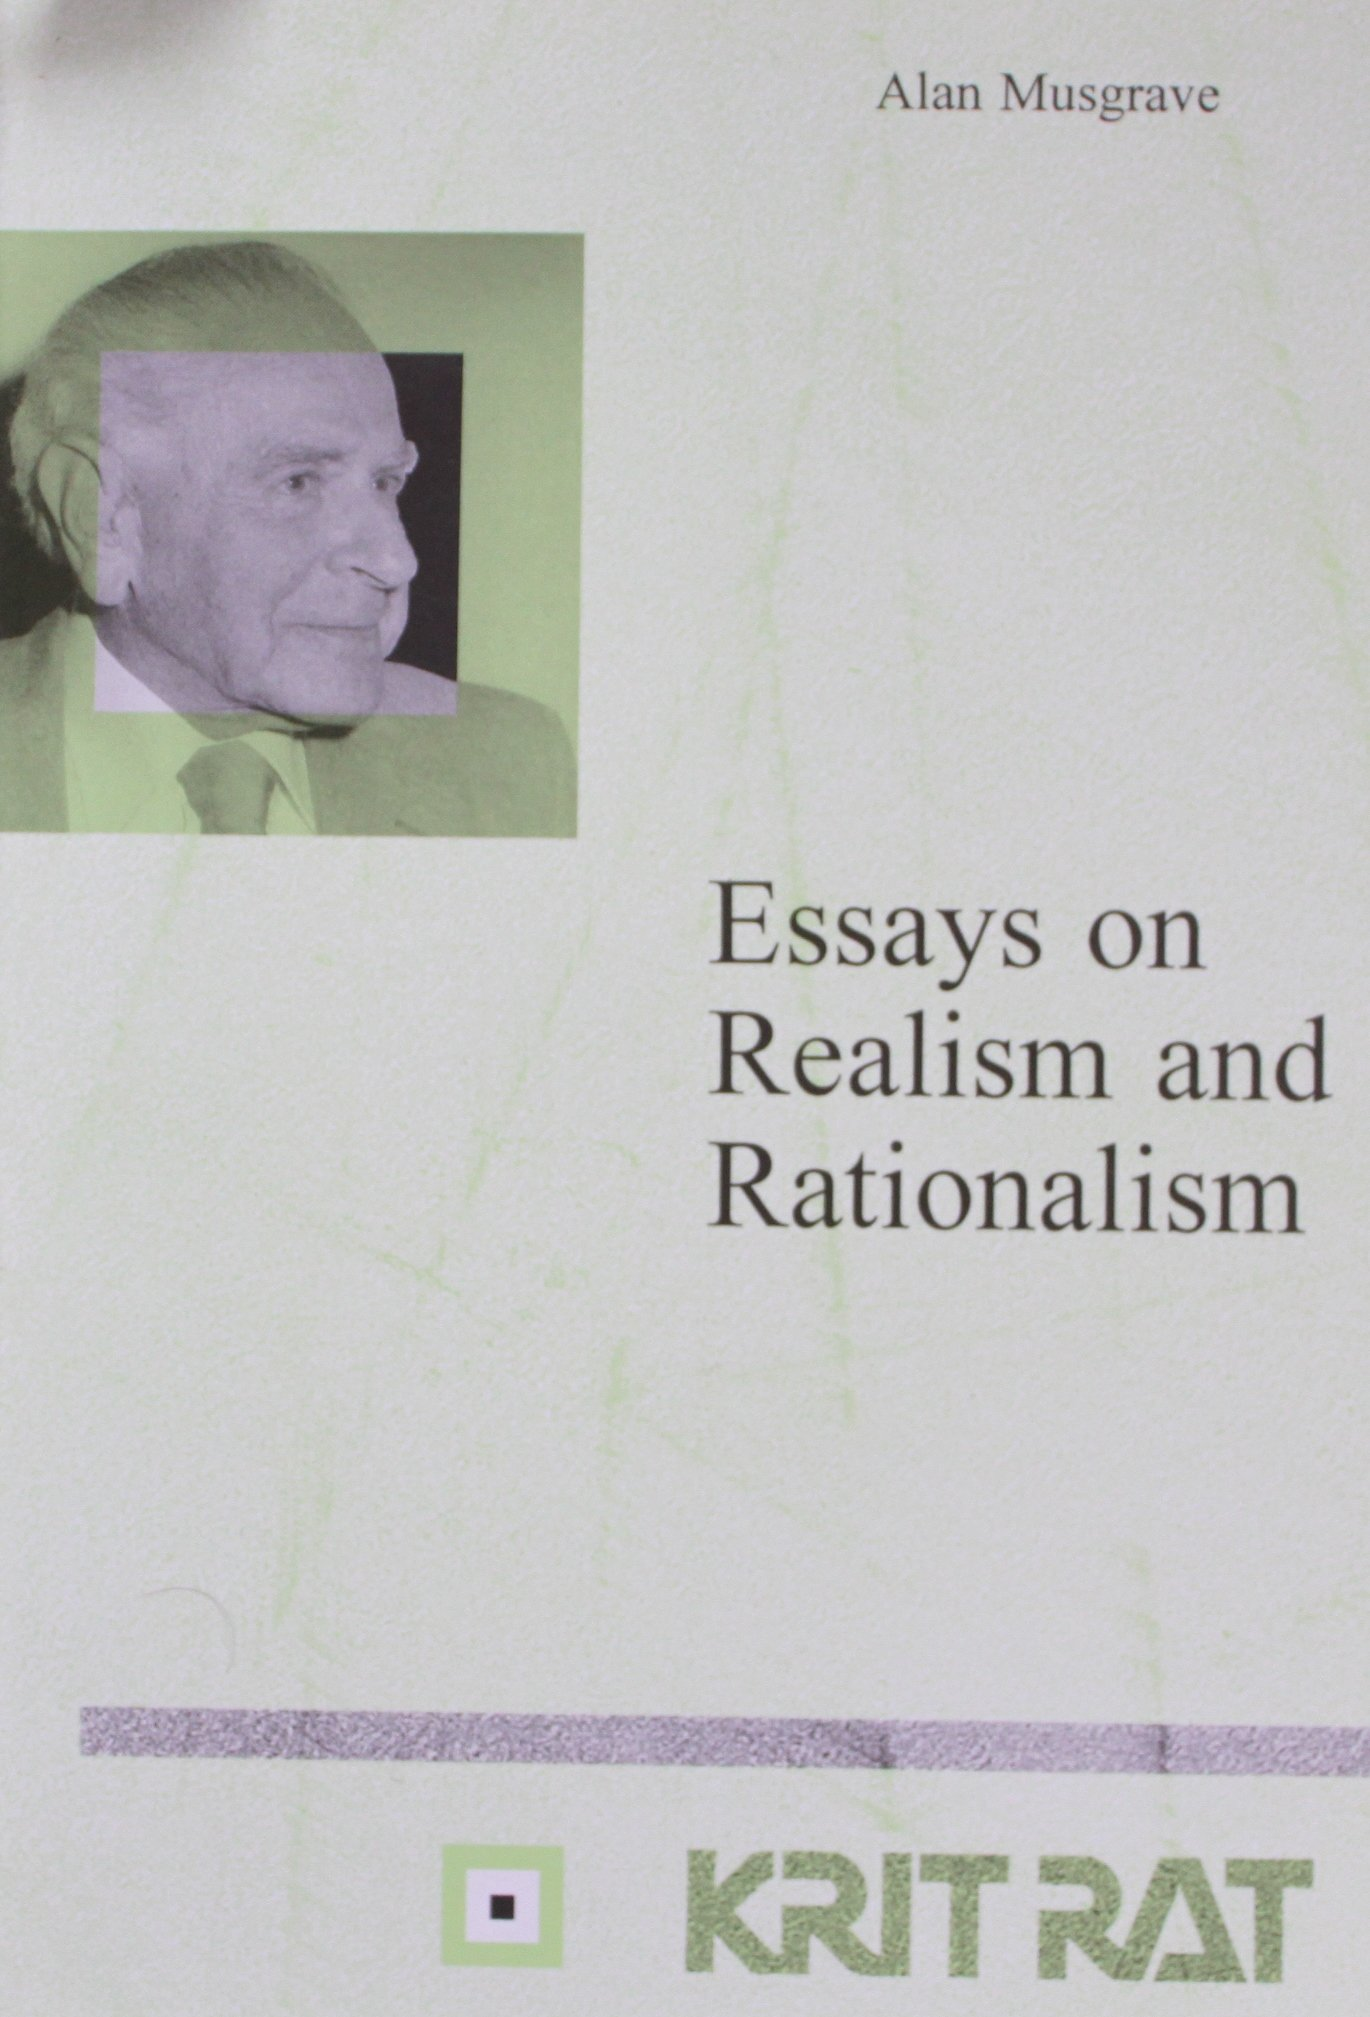 essays on realism and rationalism schriftenreihe zur philosophie essays on realism and rationalism schriftenreihe zur philosophie karl r poppers und des kritischen rationalismus series in the philosophy of karl r